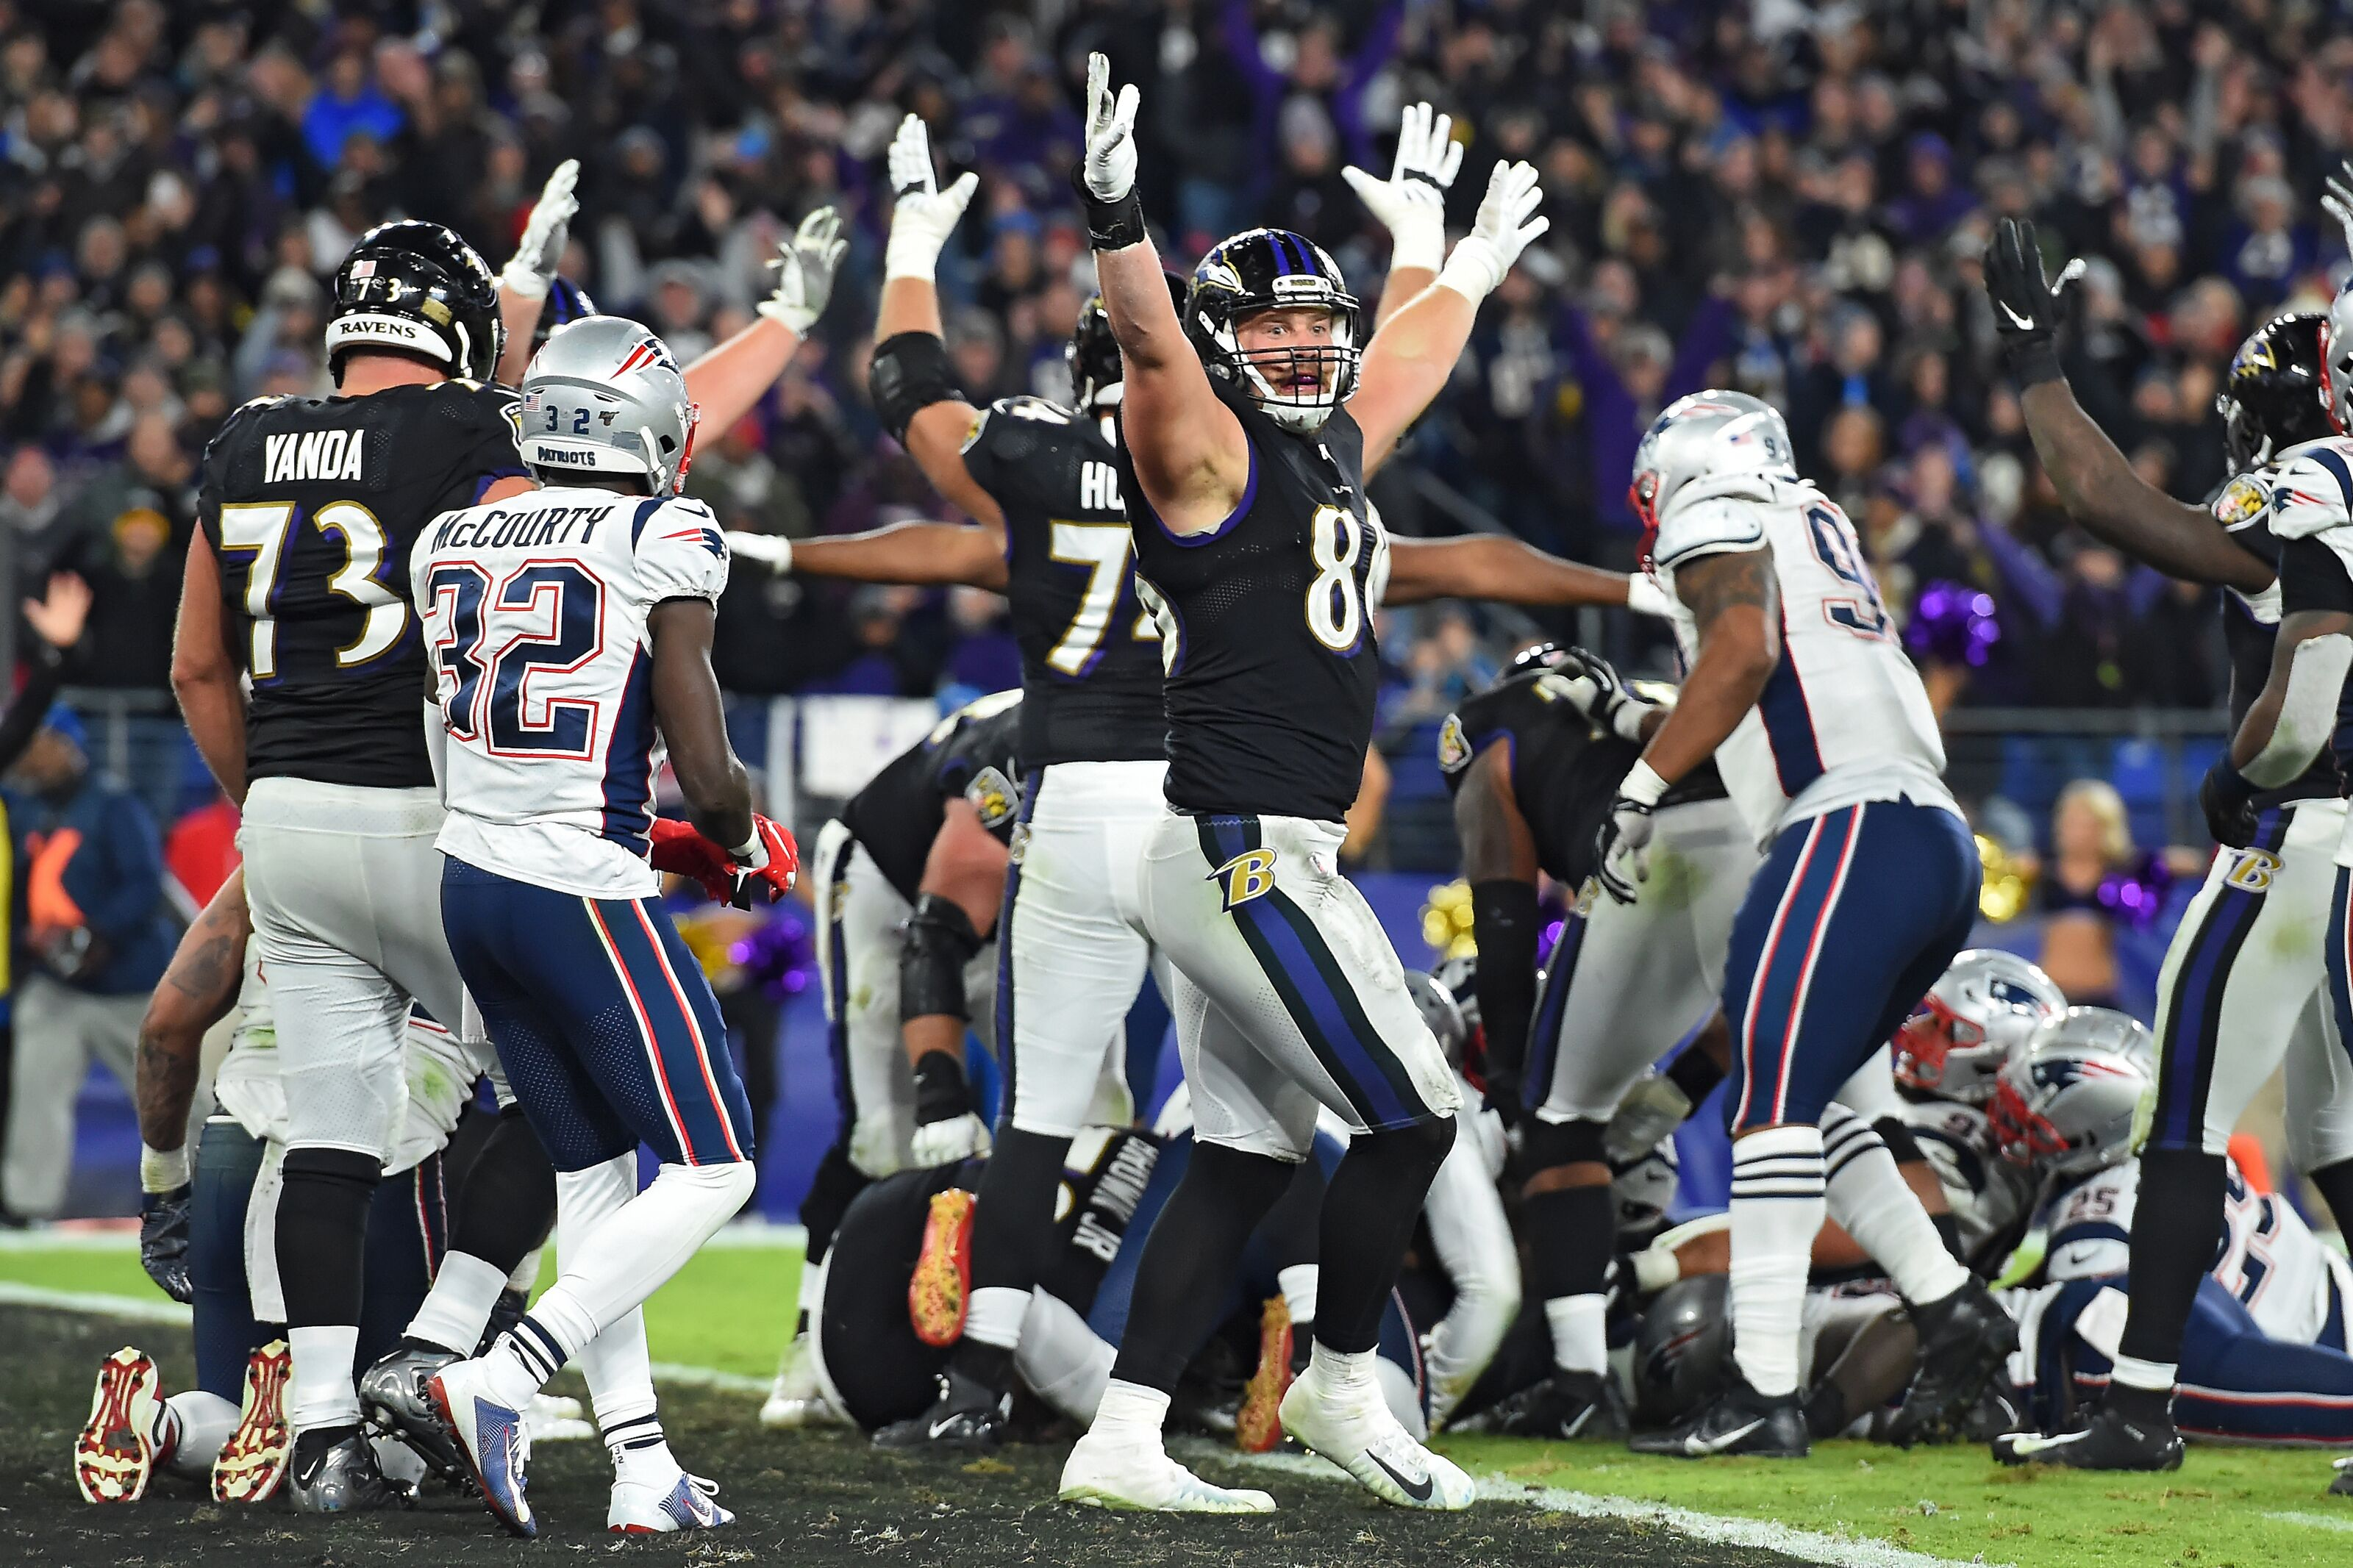 Top Takeaways from Baltimore Ravens win over New England Patriots